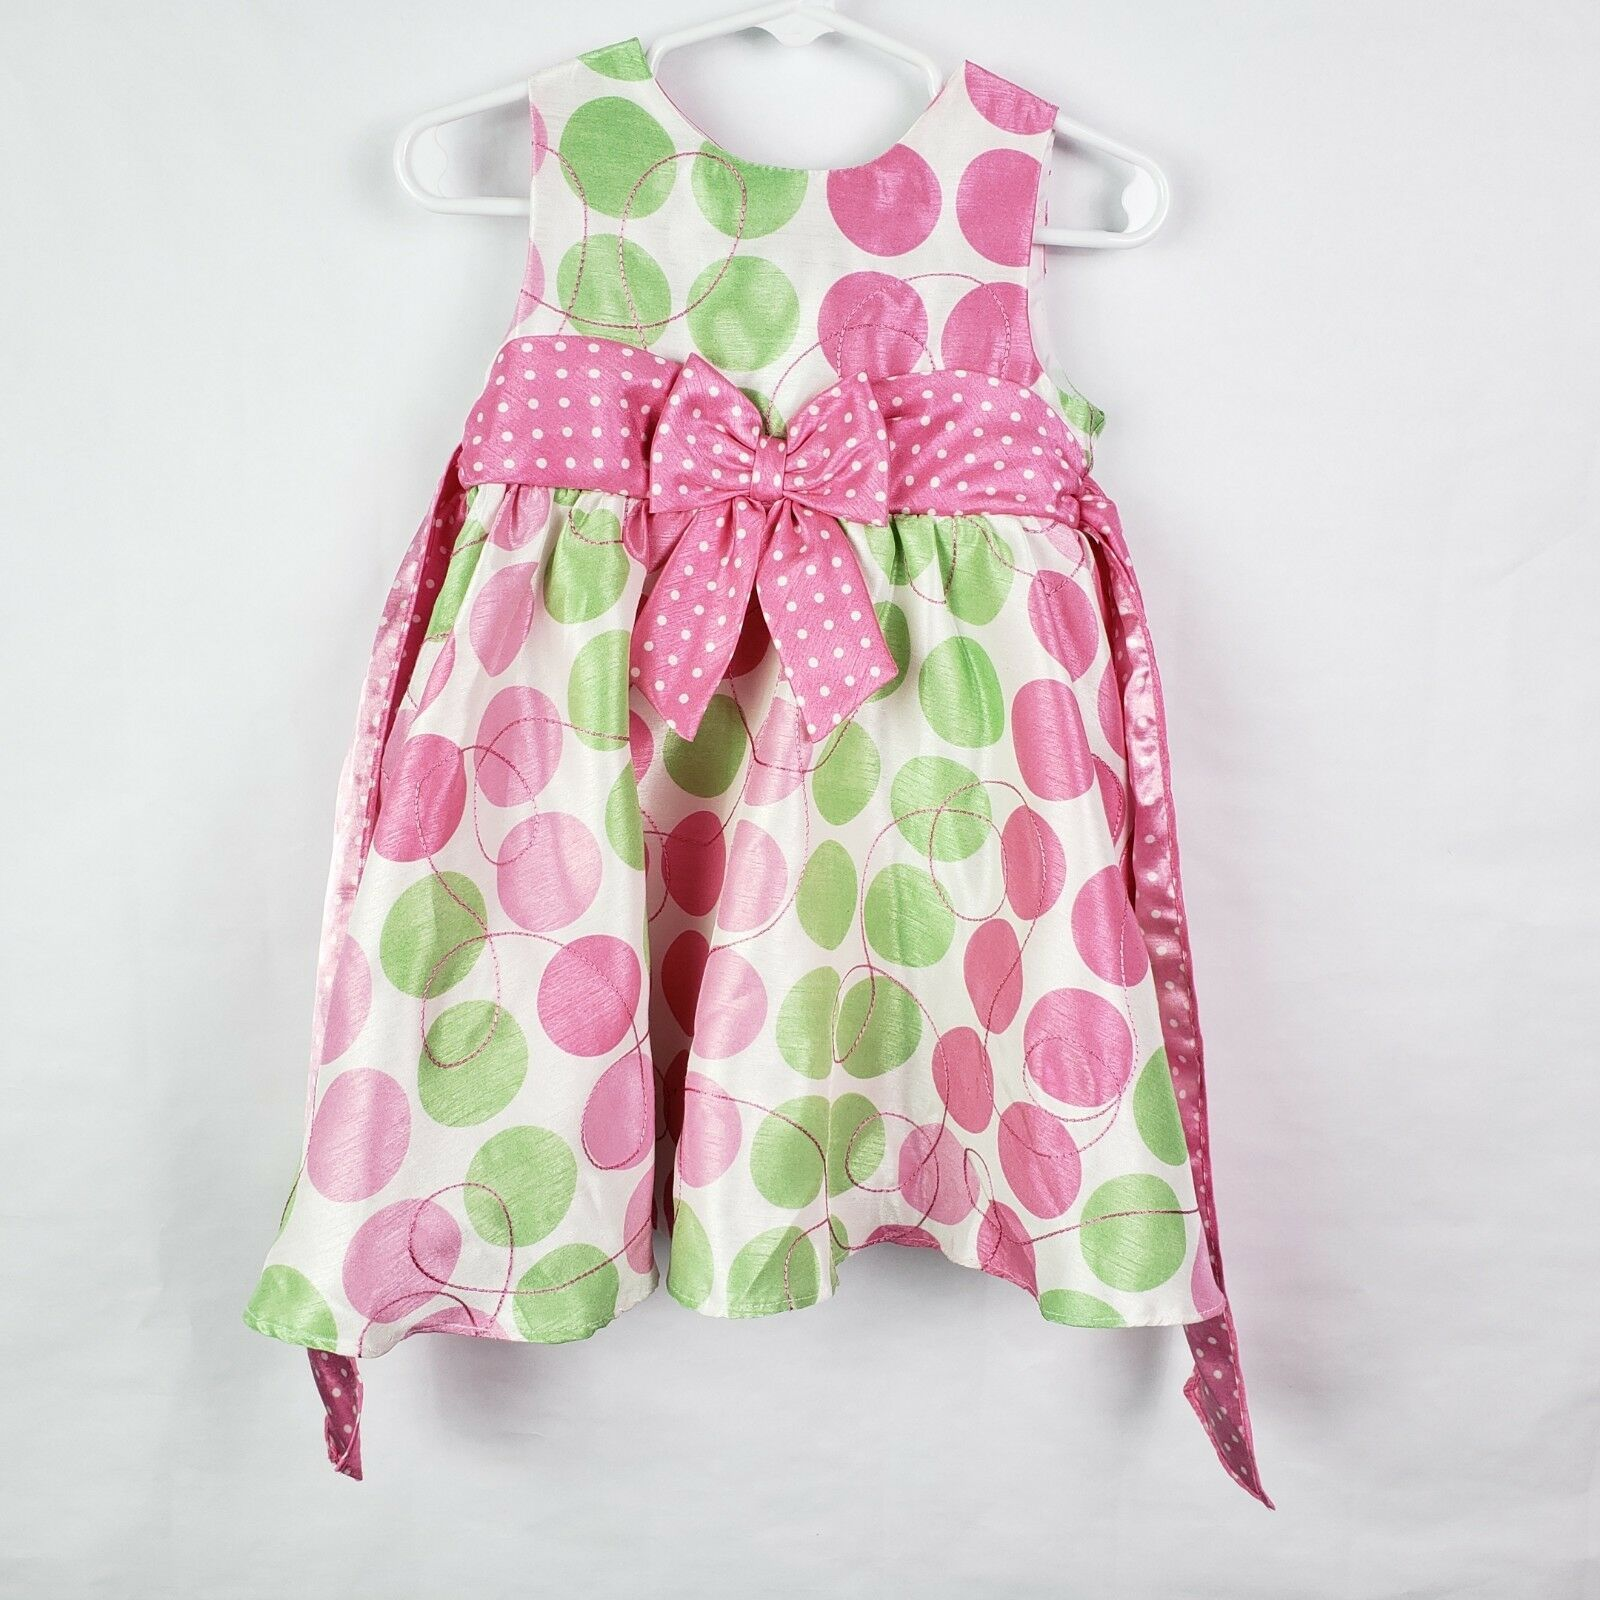 Primary image for Rare Editions Toddler Girls Dress 18M White Pink Green Dots Sleeveless Ribbon